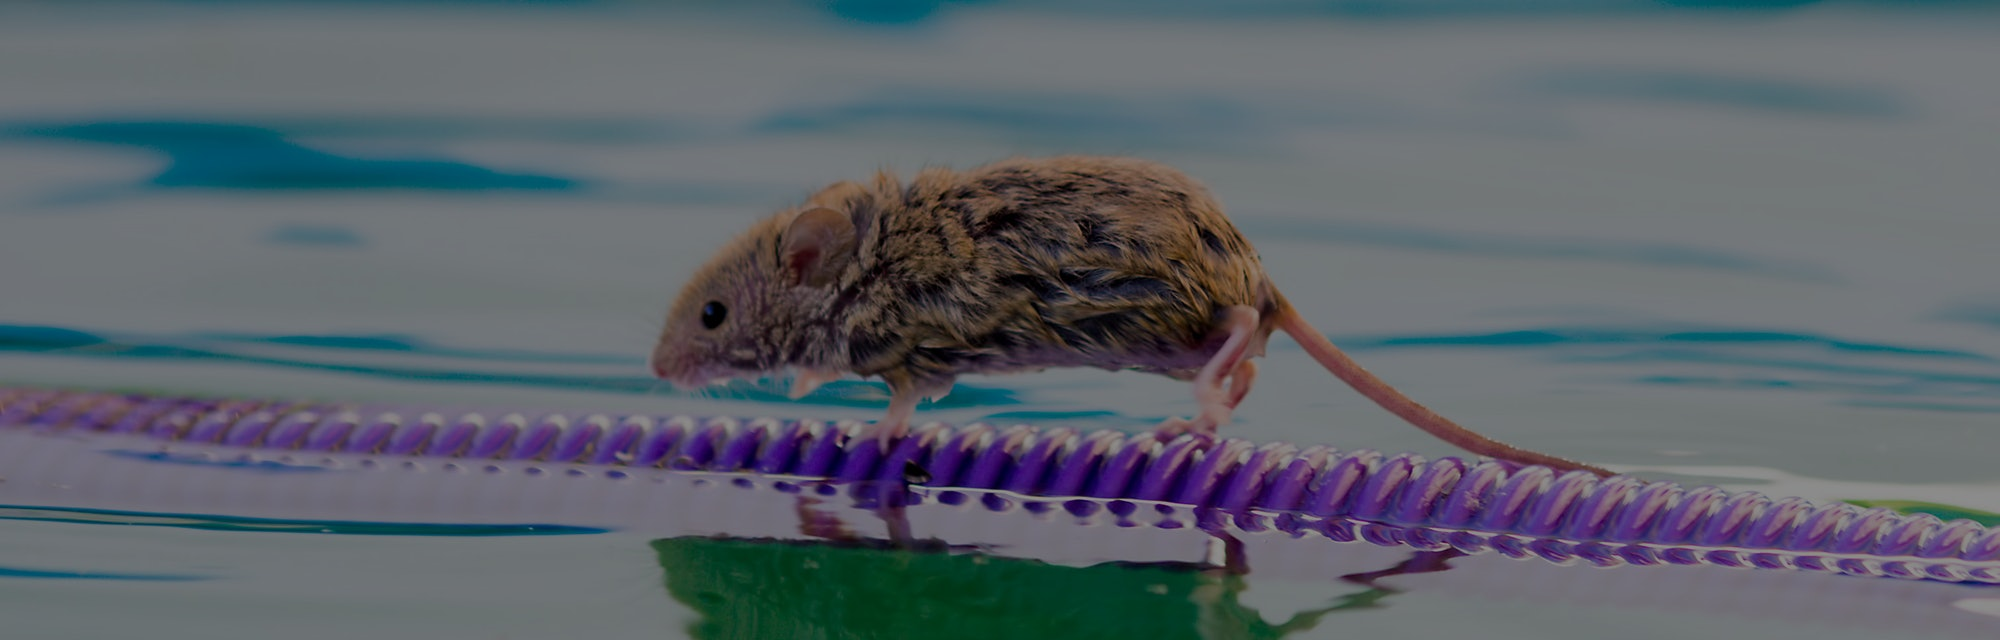 wet and frightened mouse